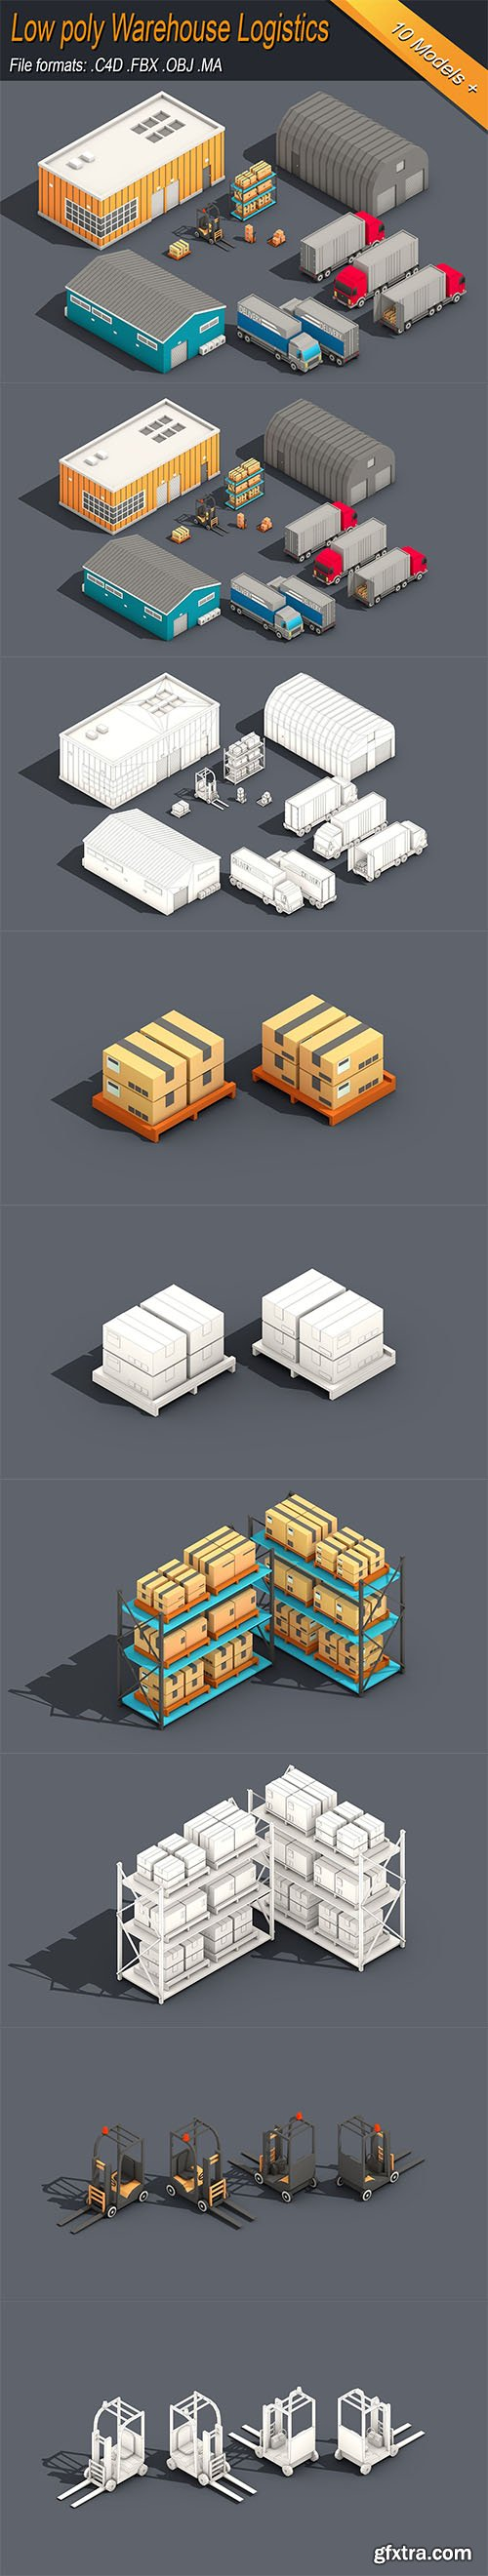 Cgtrader - Low Poly Warehouse Logistics Isometric Low-poly 3D model